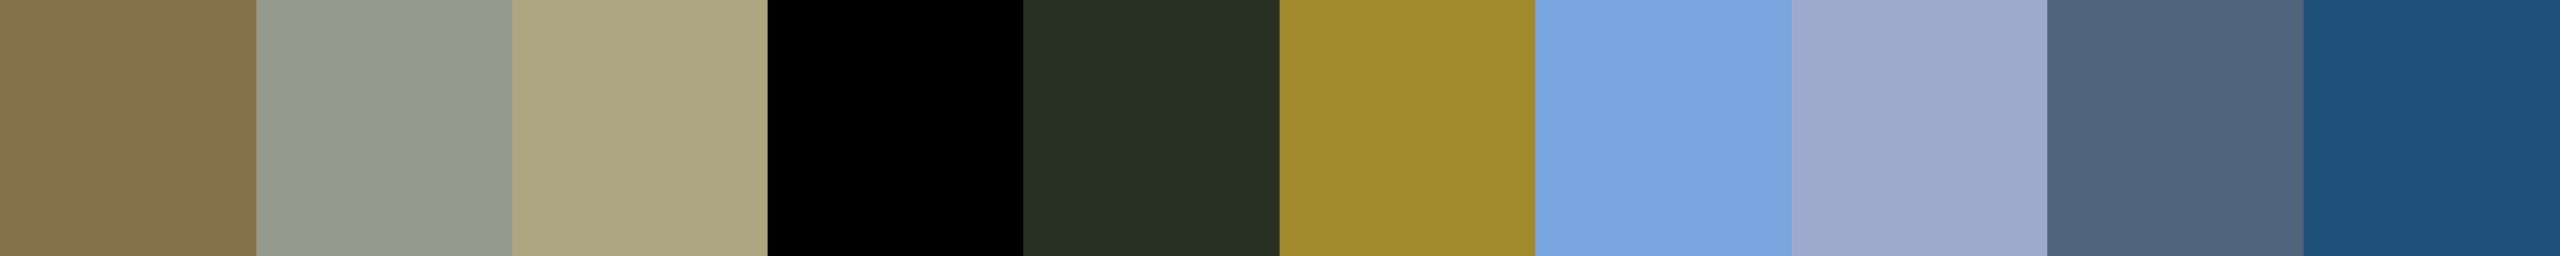 599 Kirolima Color Palette